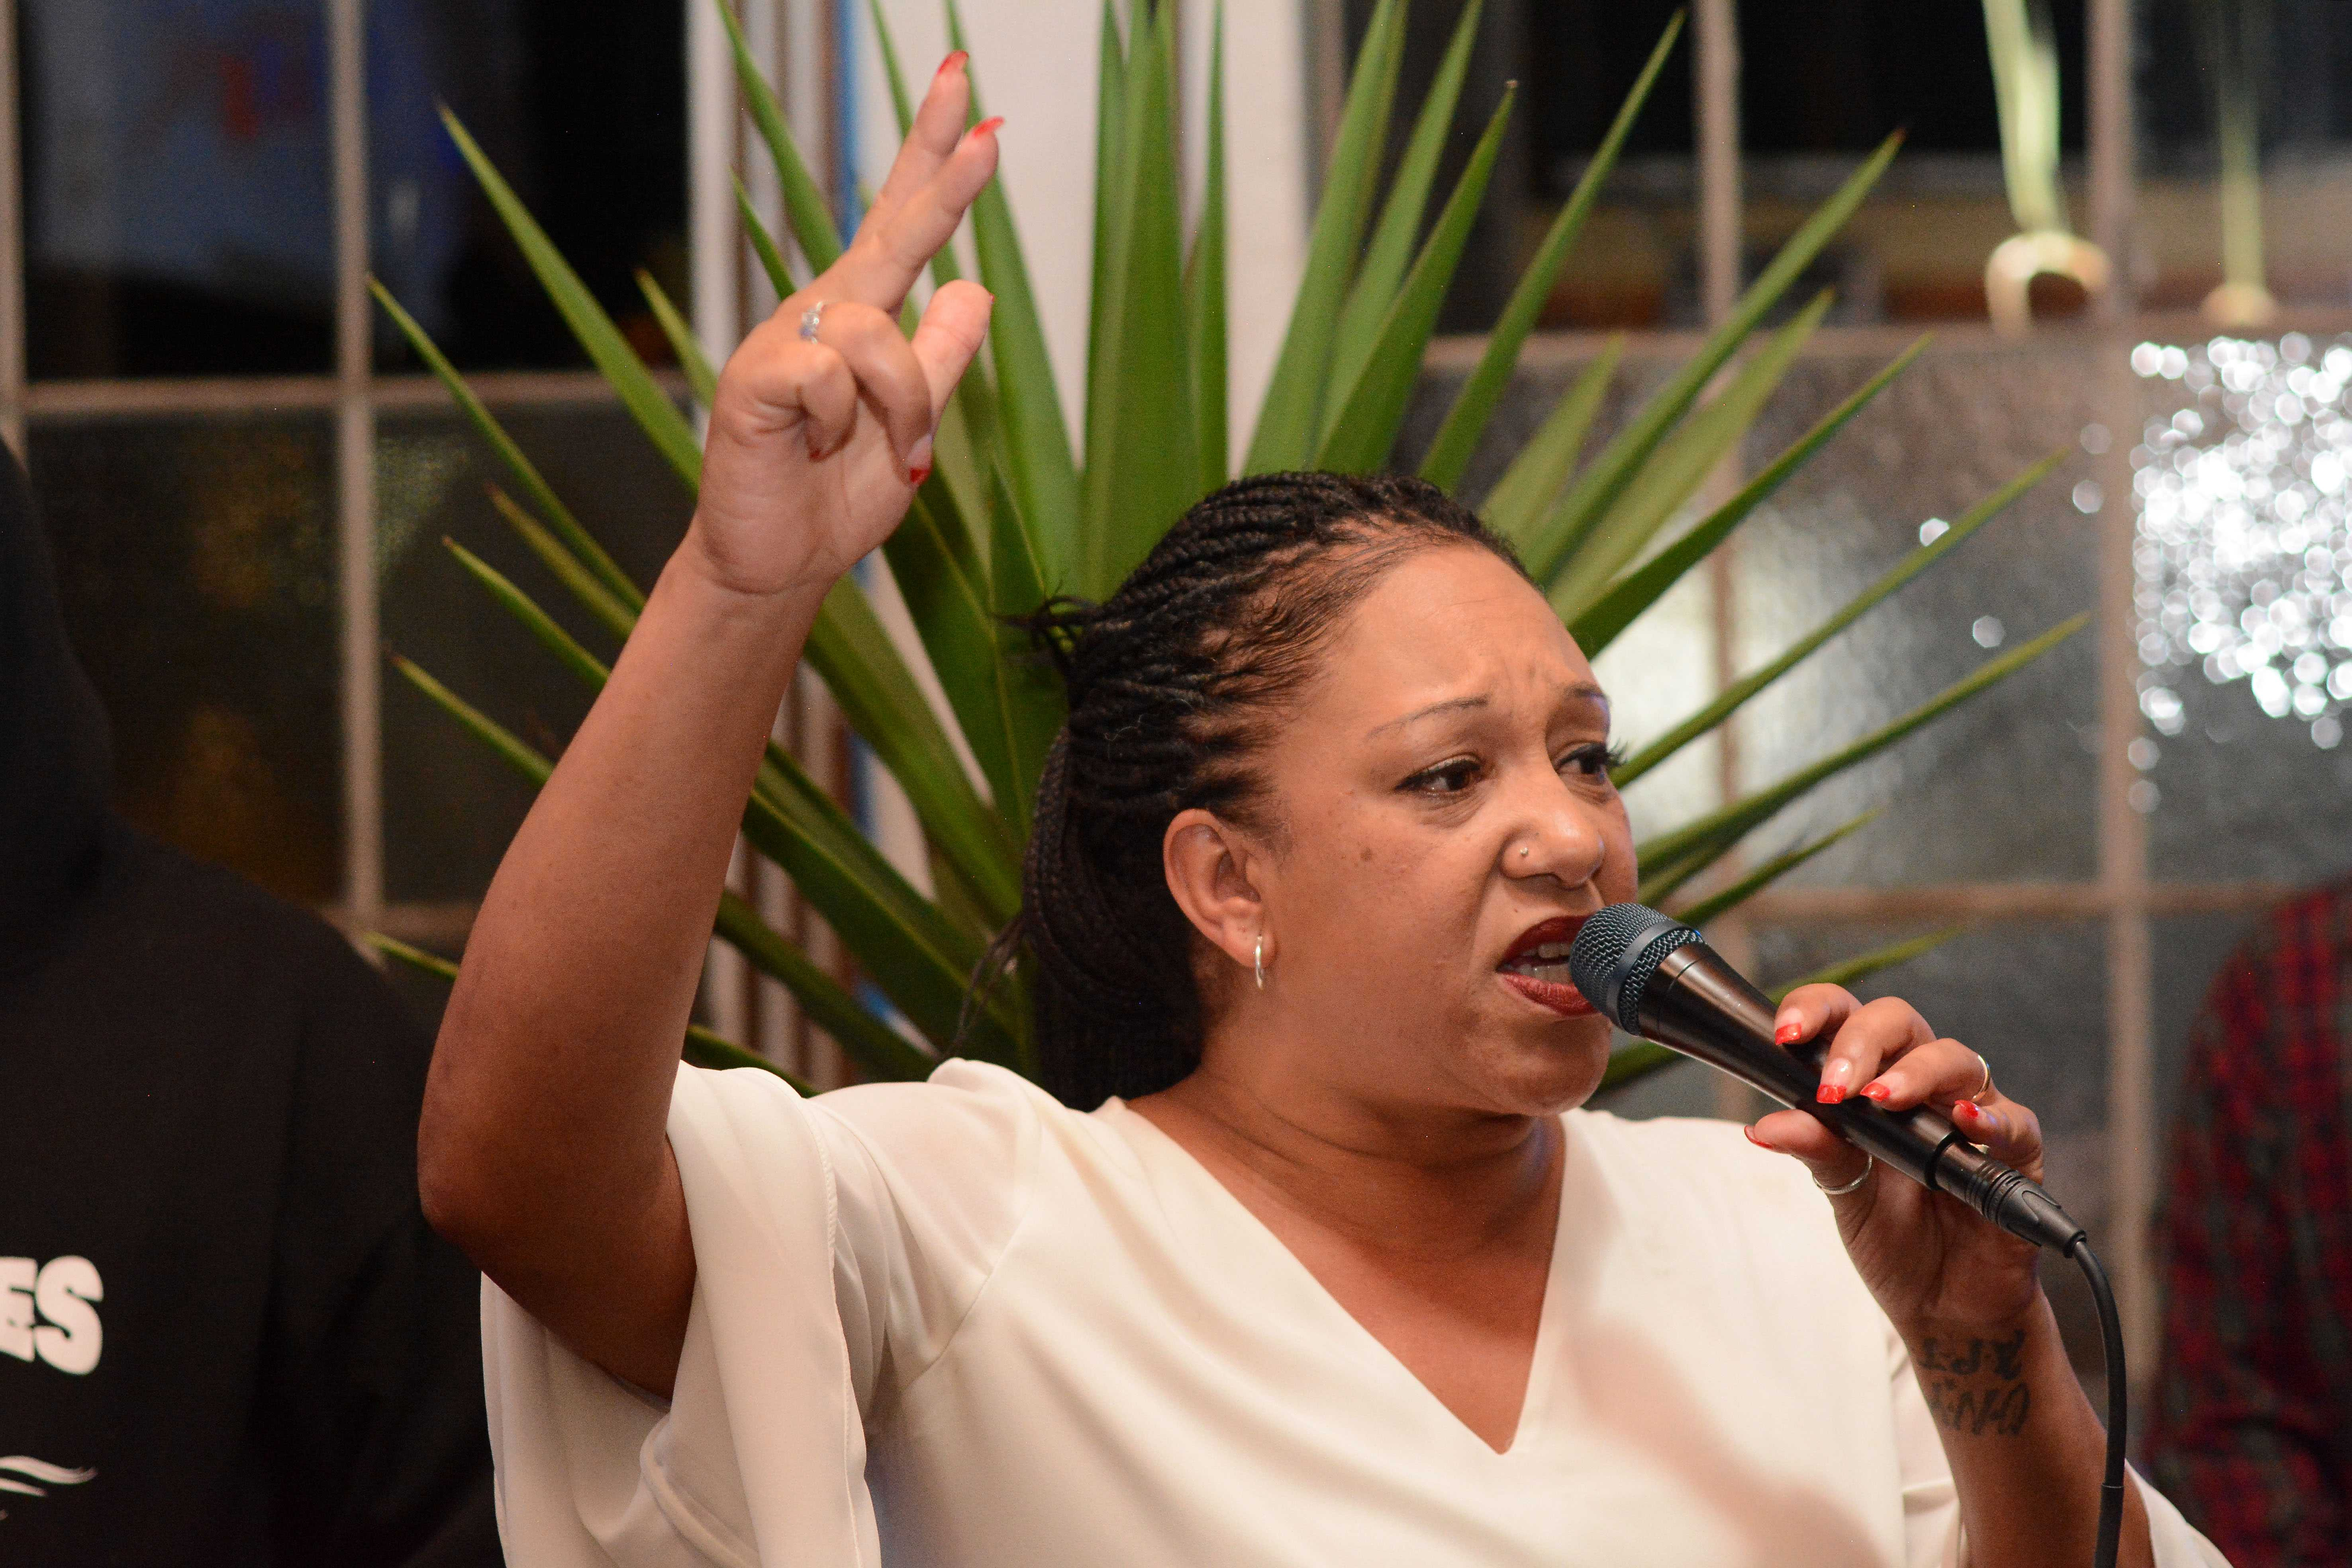 Oakland mayoral candidate Cat Brooks makes a short speech, thanking her supporters for their help over the last six months, at a watch party for Brooks at Red Bay Coffee in Oakland, Calif. on Tuesday, Nov. 6, 2018. Brooks, a community-based activist, faces incumbent Libby Schaaf in the race for Mayor of Oakland. (Aaron Levy-Wolins/Golden Gate Xpress)